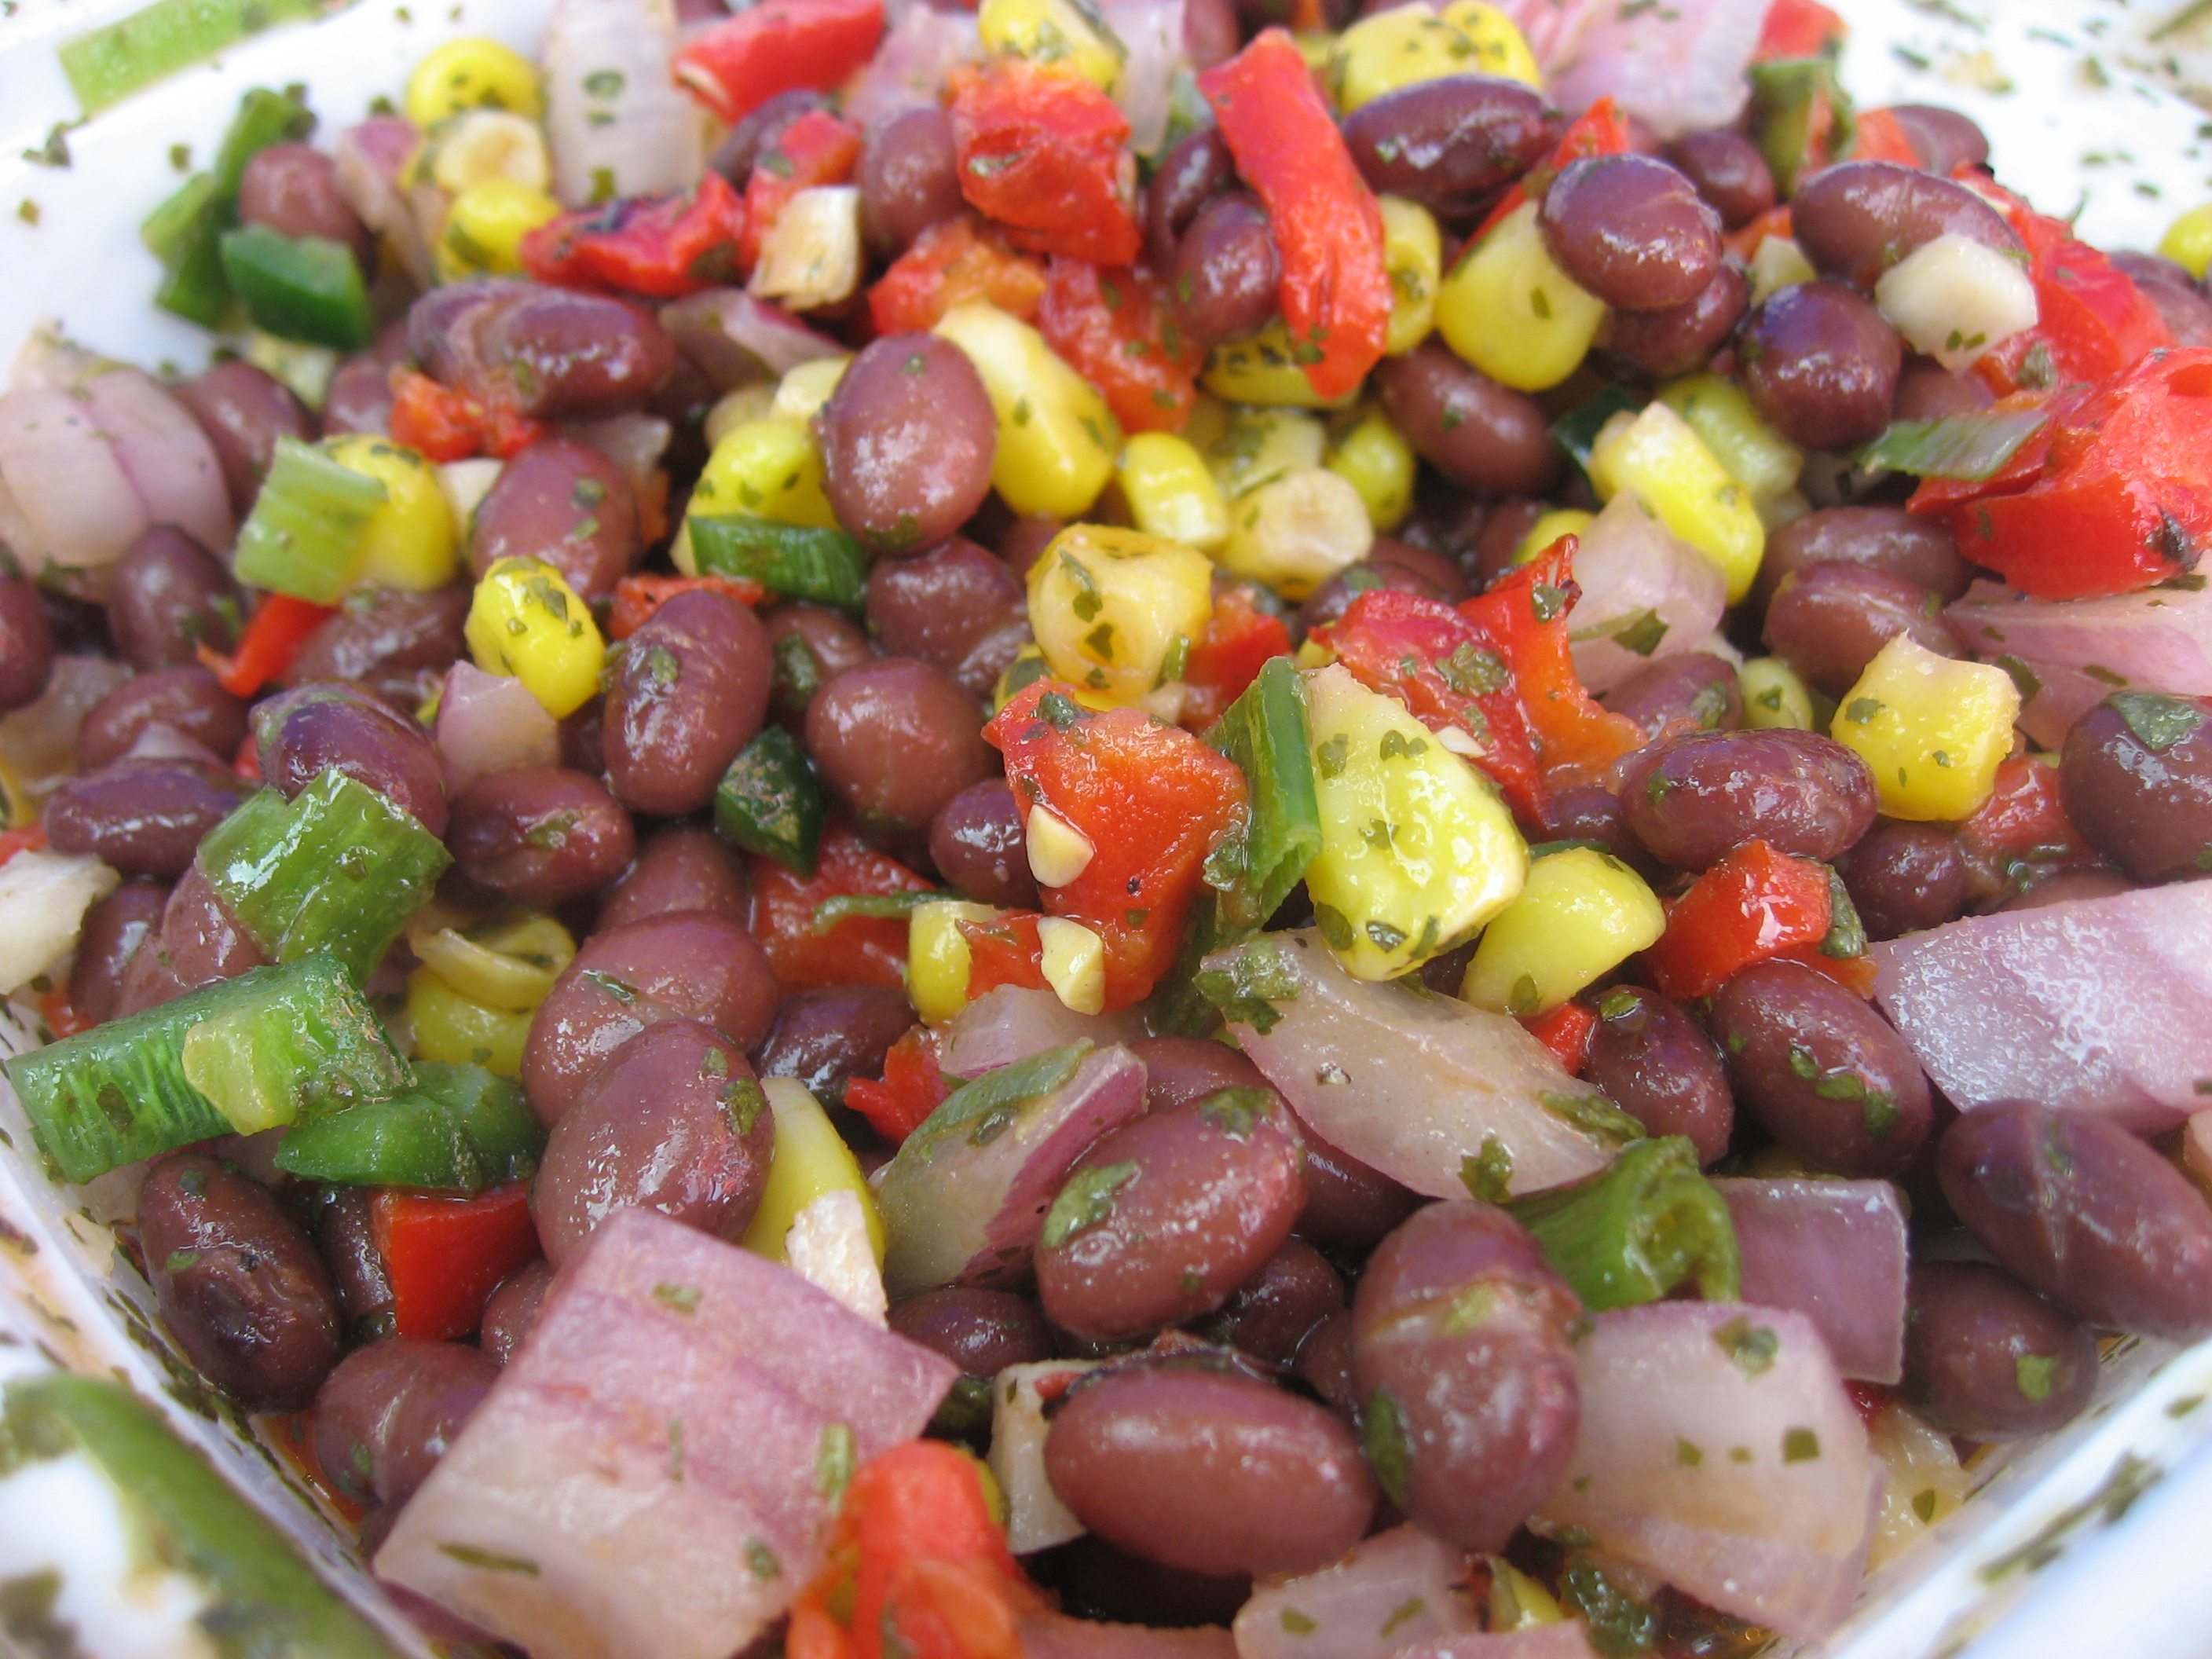 Does this Southwest Black Bean Salad look great? Photo by Kate Langenburg.